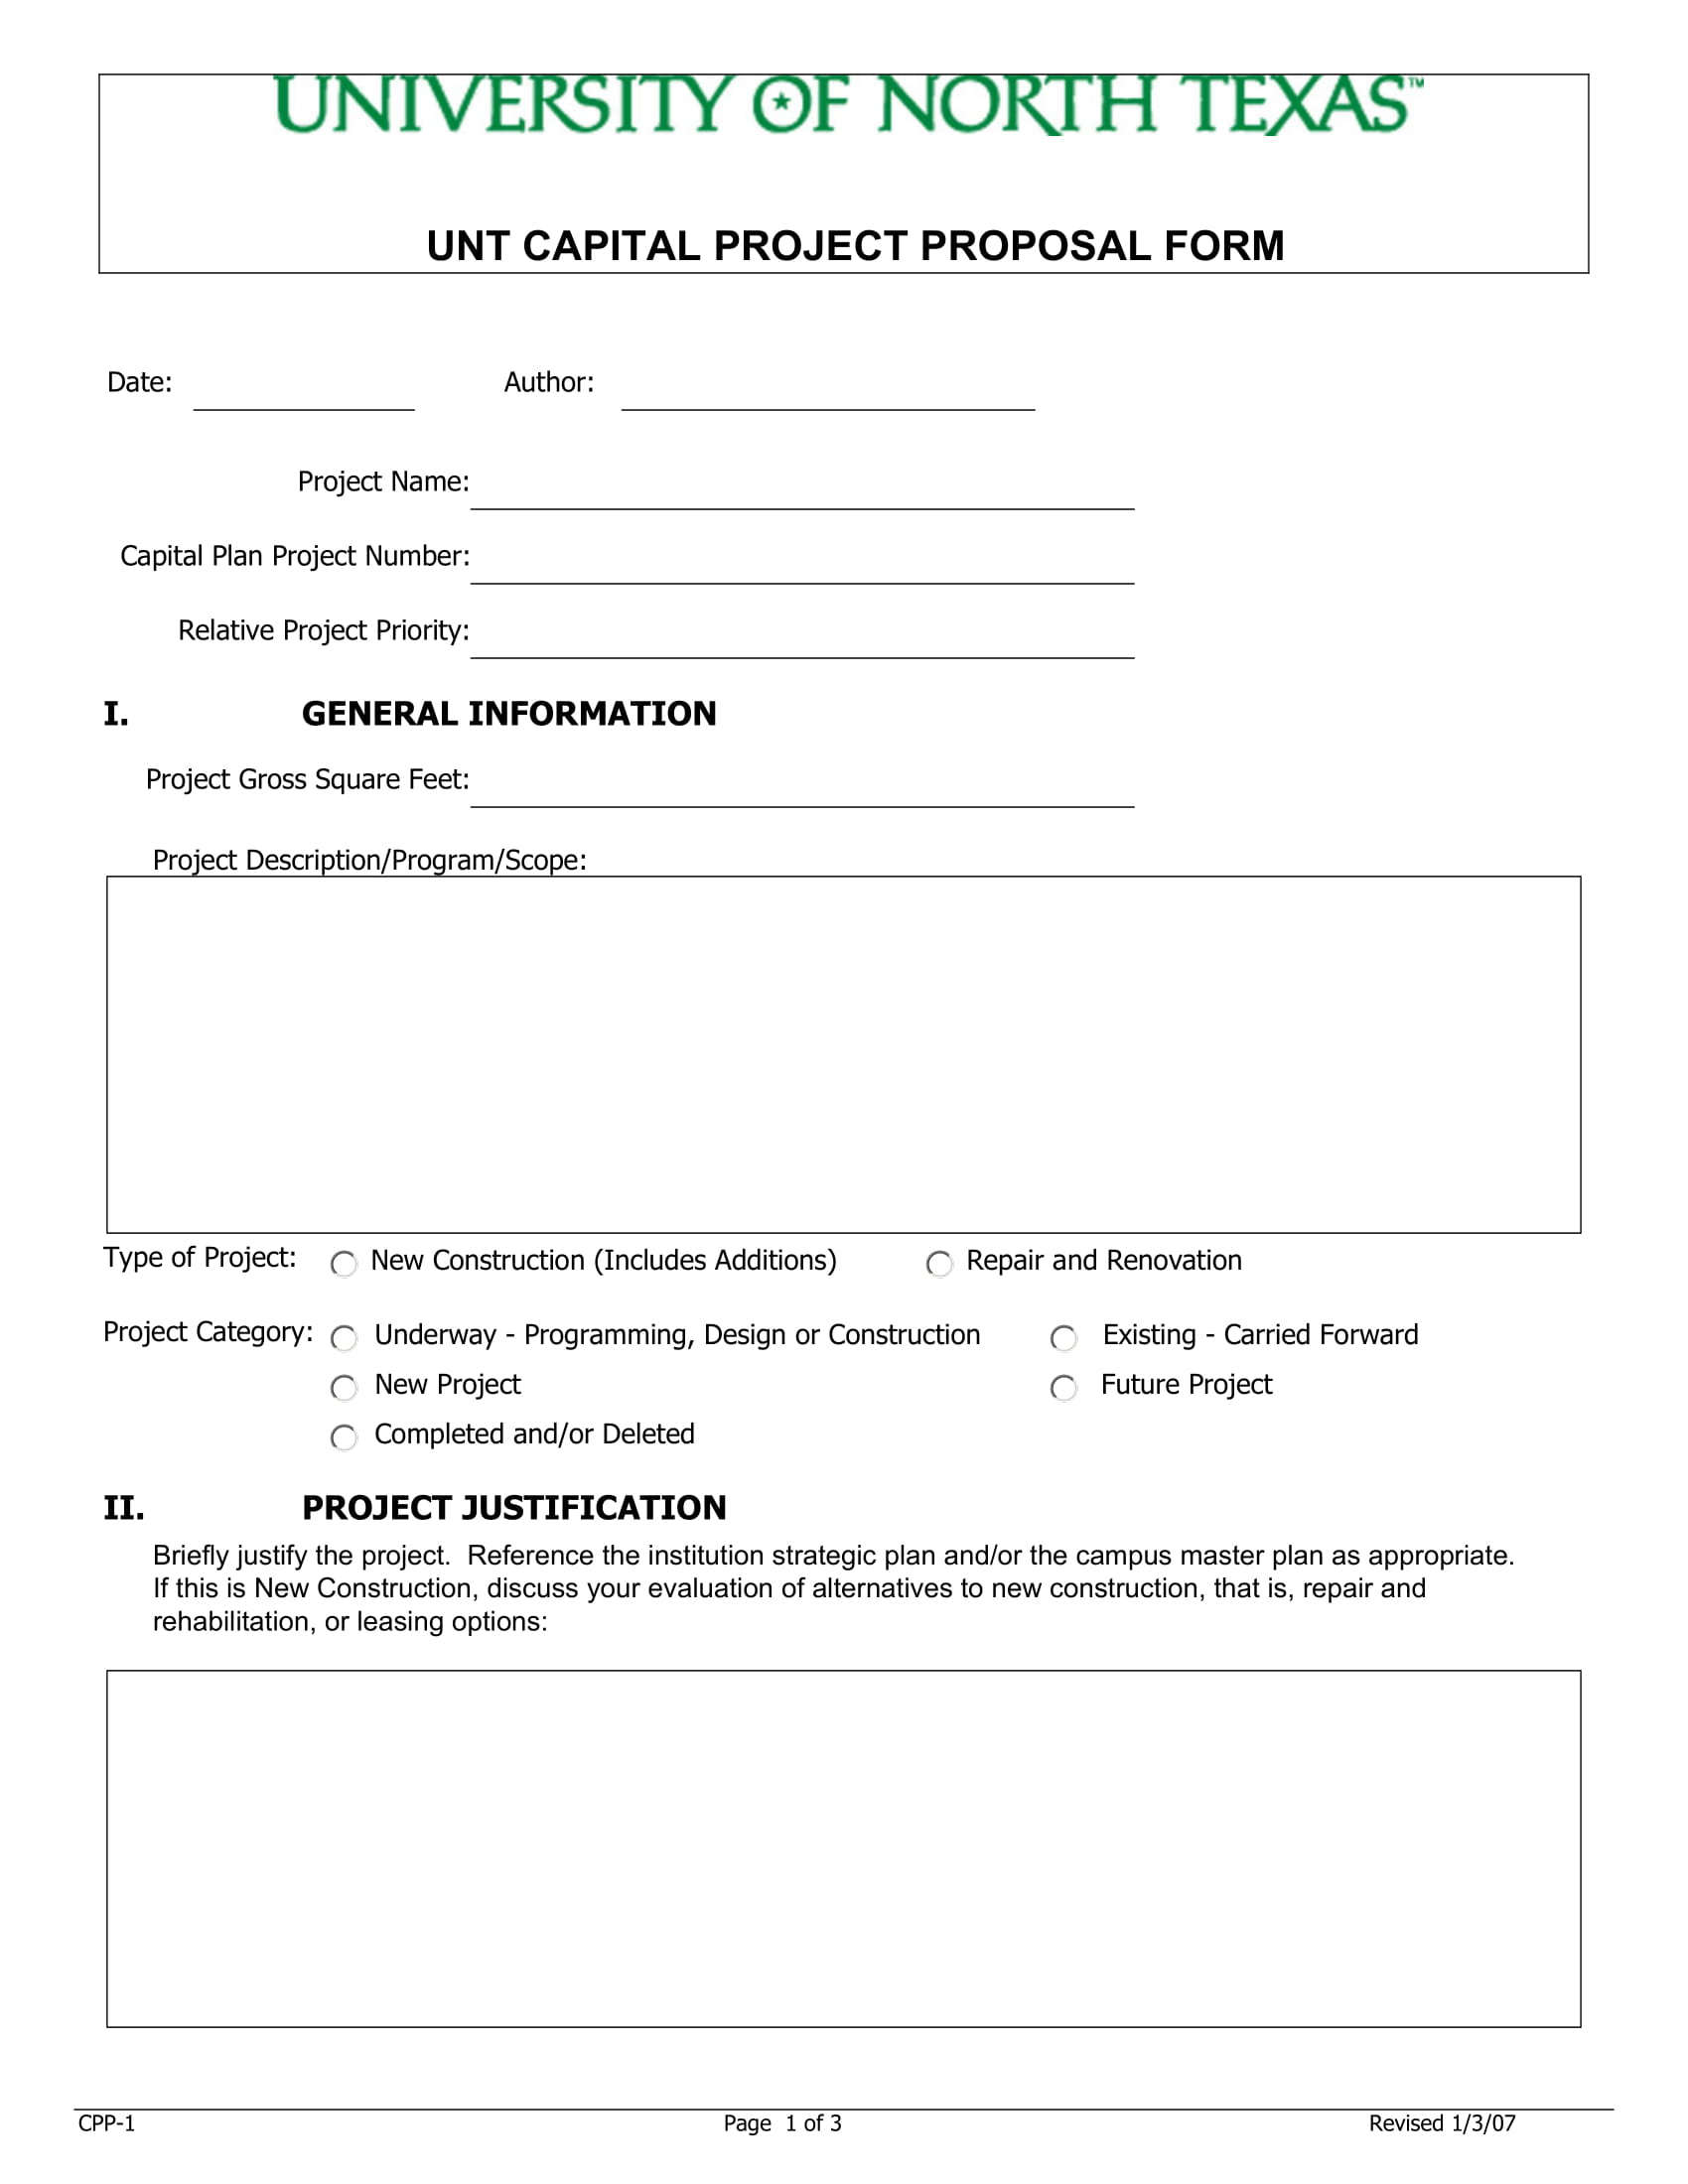 unt capital project proposal form example